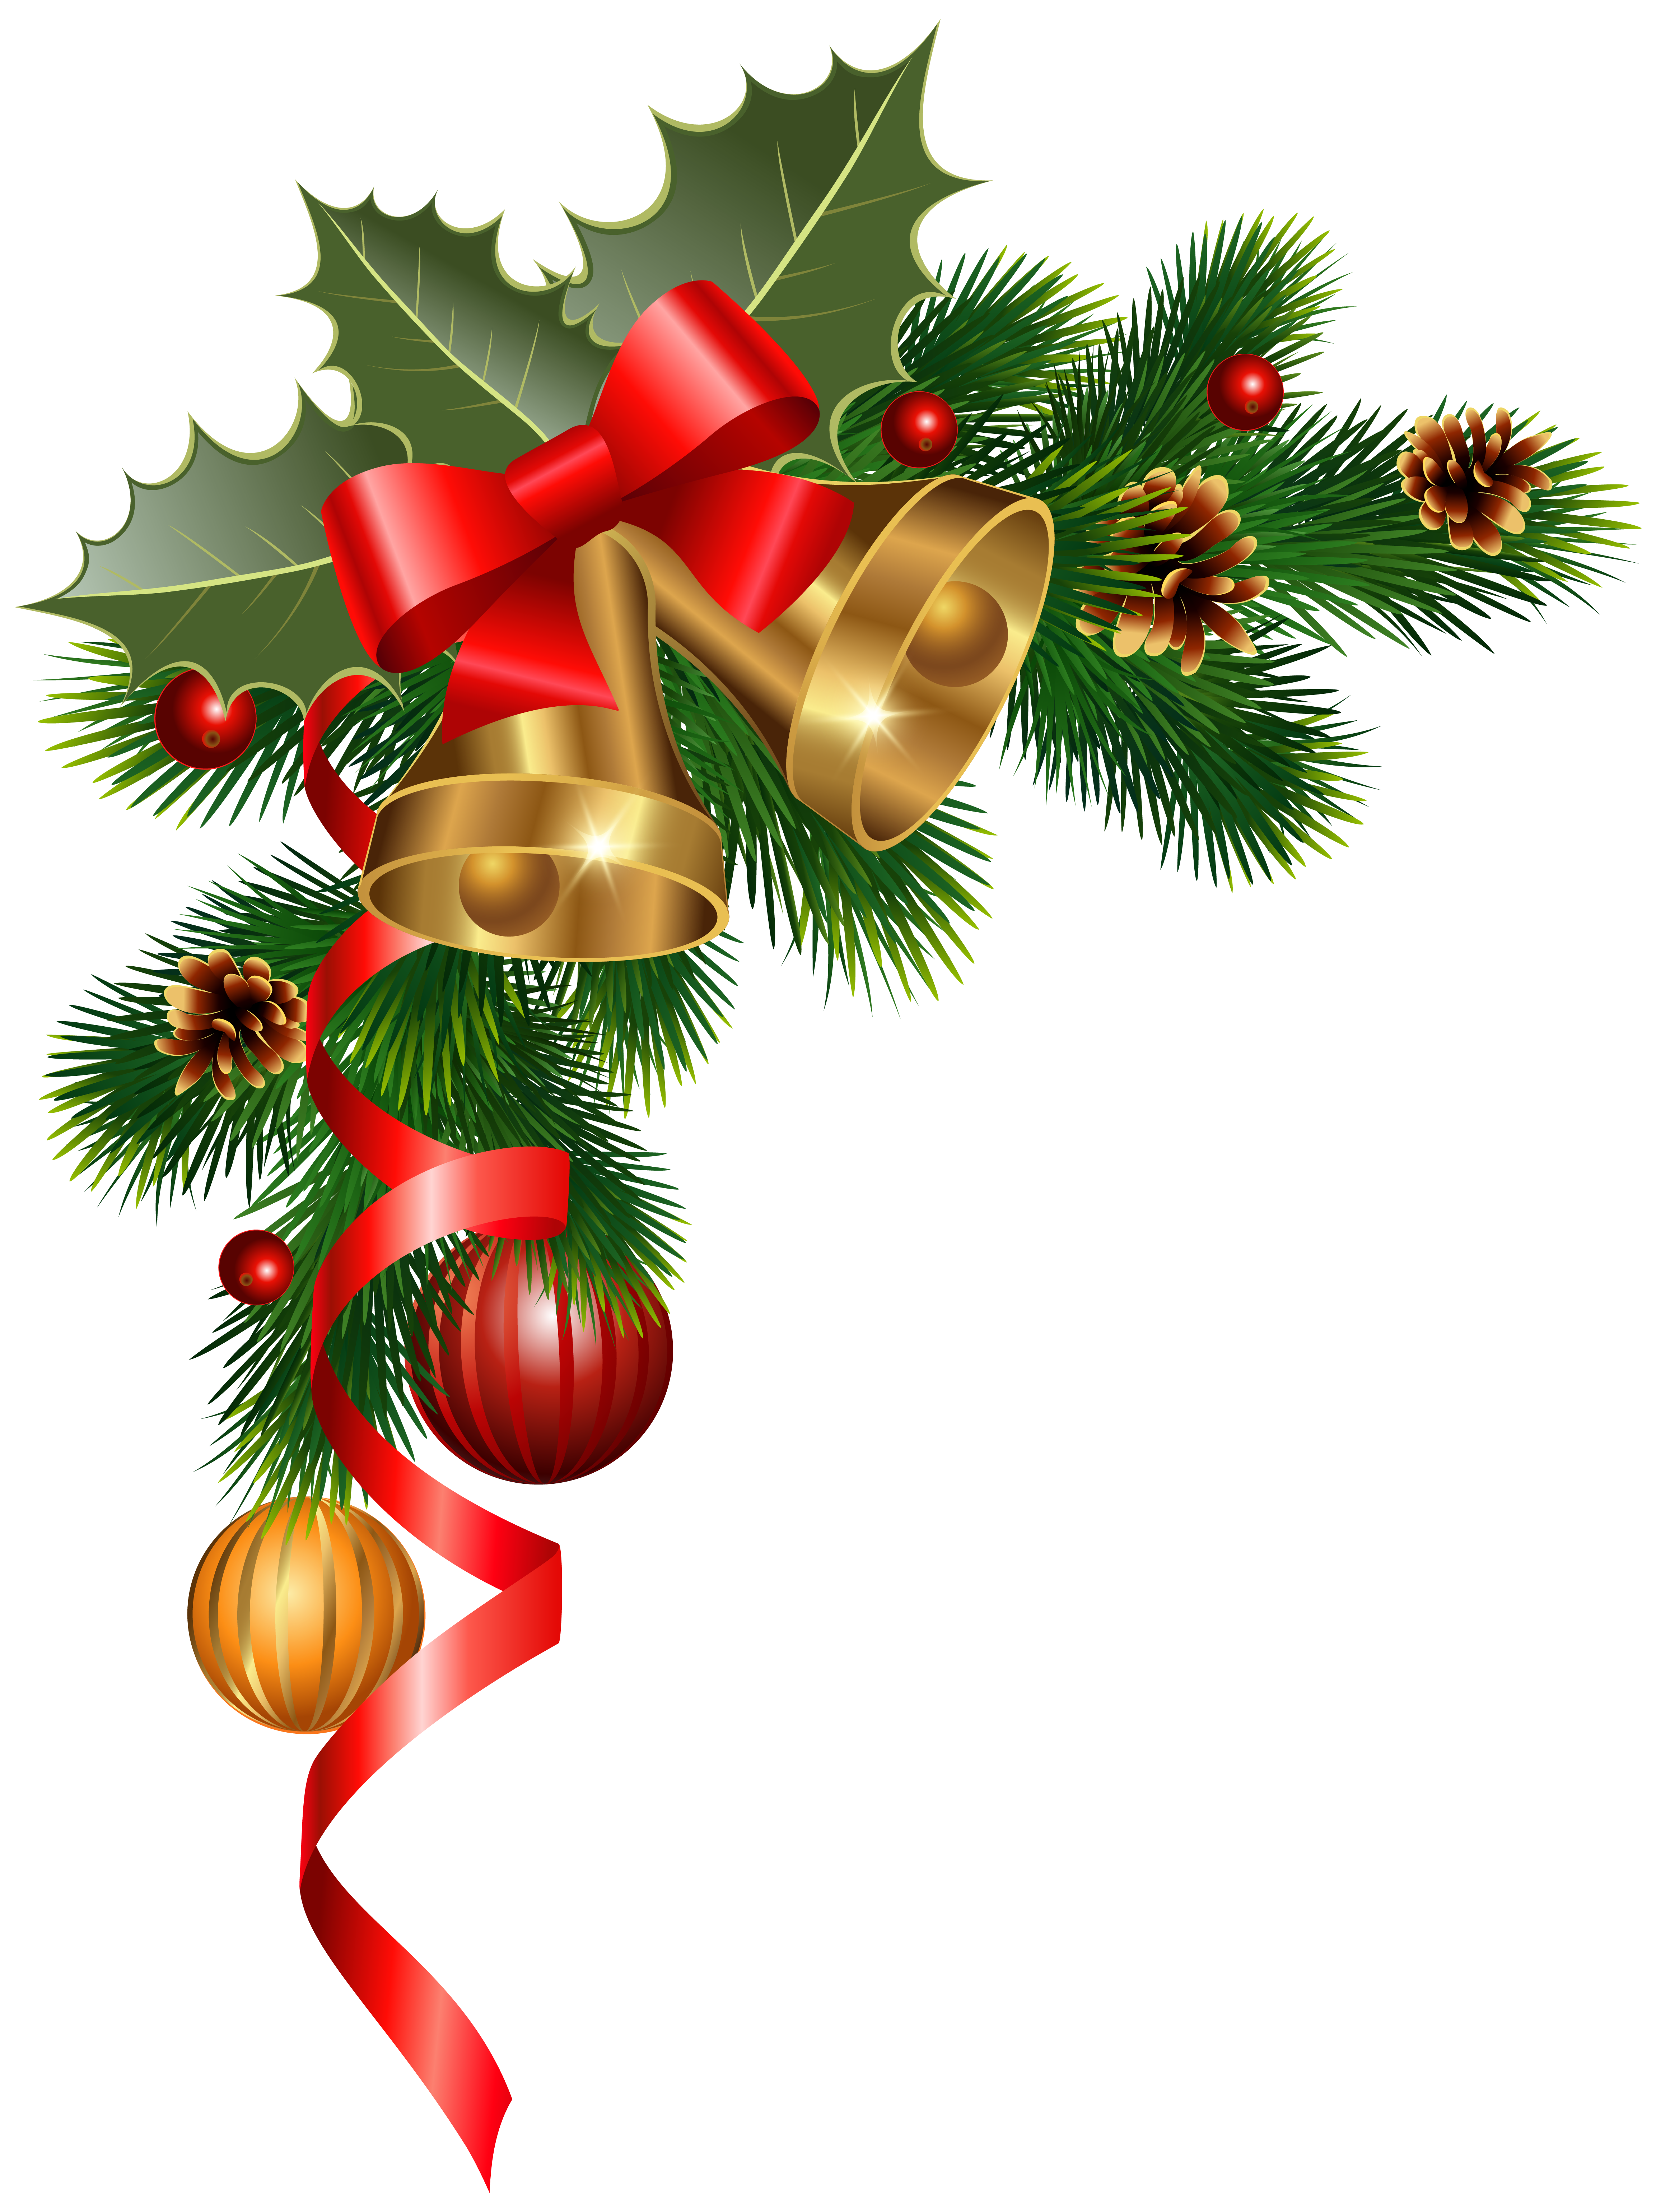 Christmas Corner Borders Images Pictures Becuo — Stock Image.